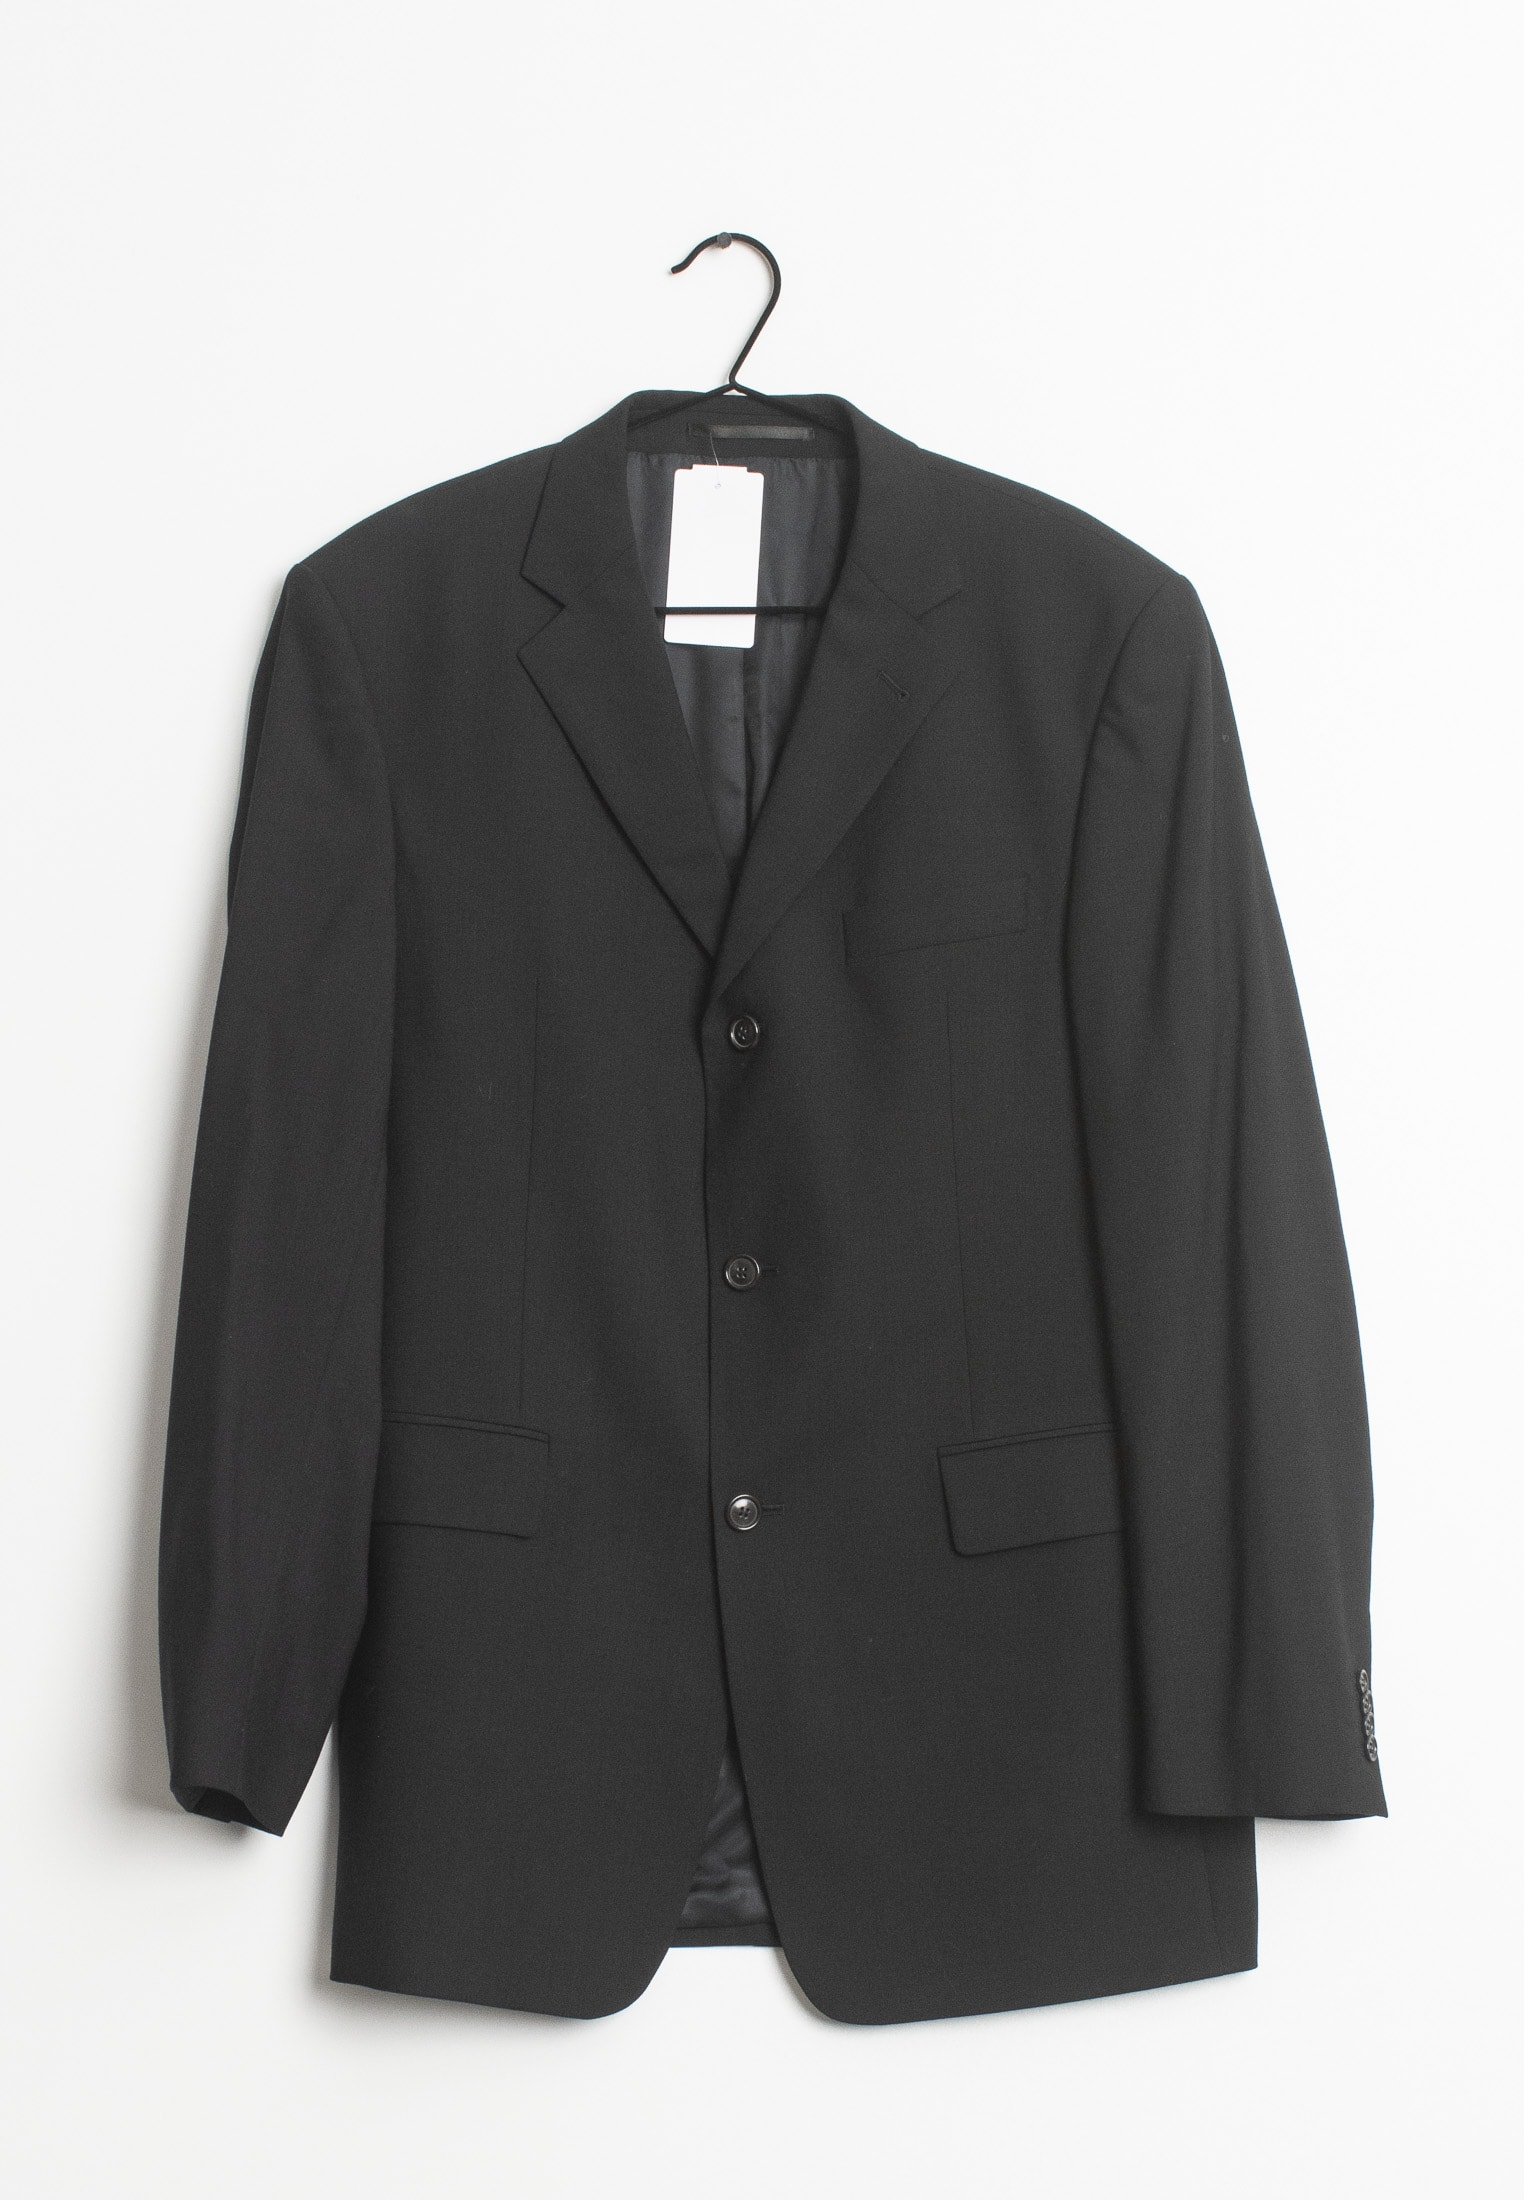 WORMLAND blazer, sort, 102